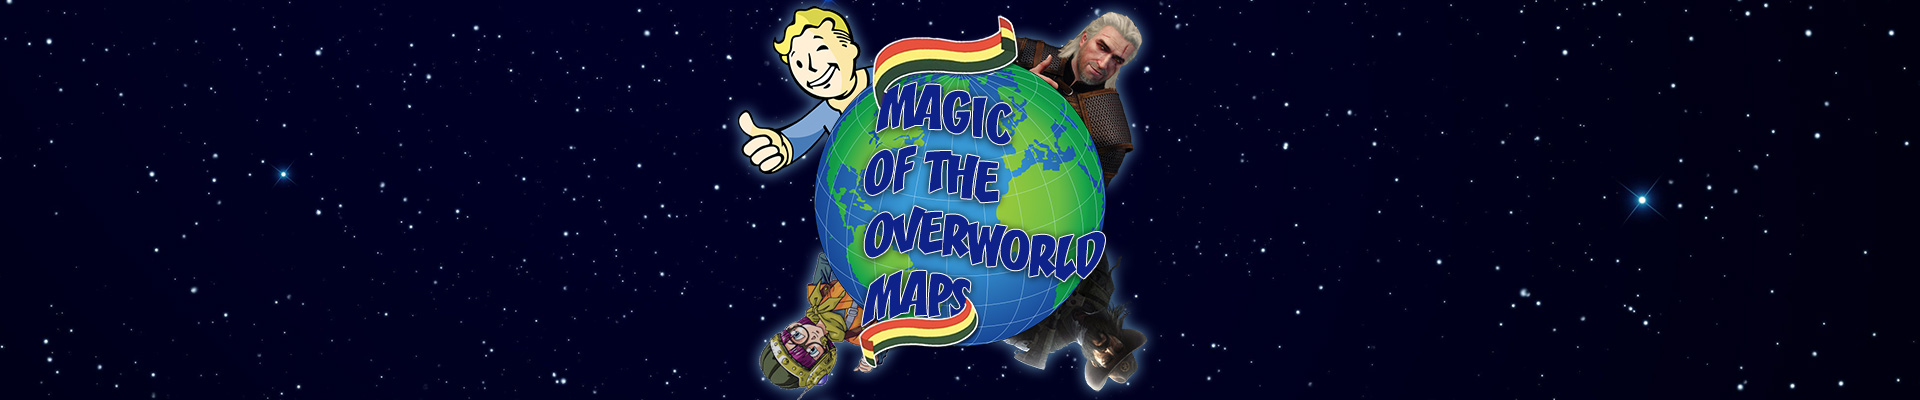 Gamer talk on game design: Magic of the overworld maps